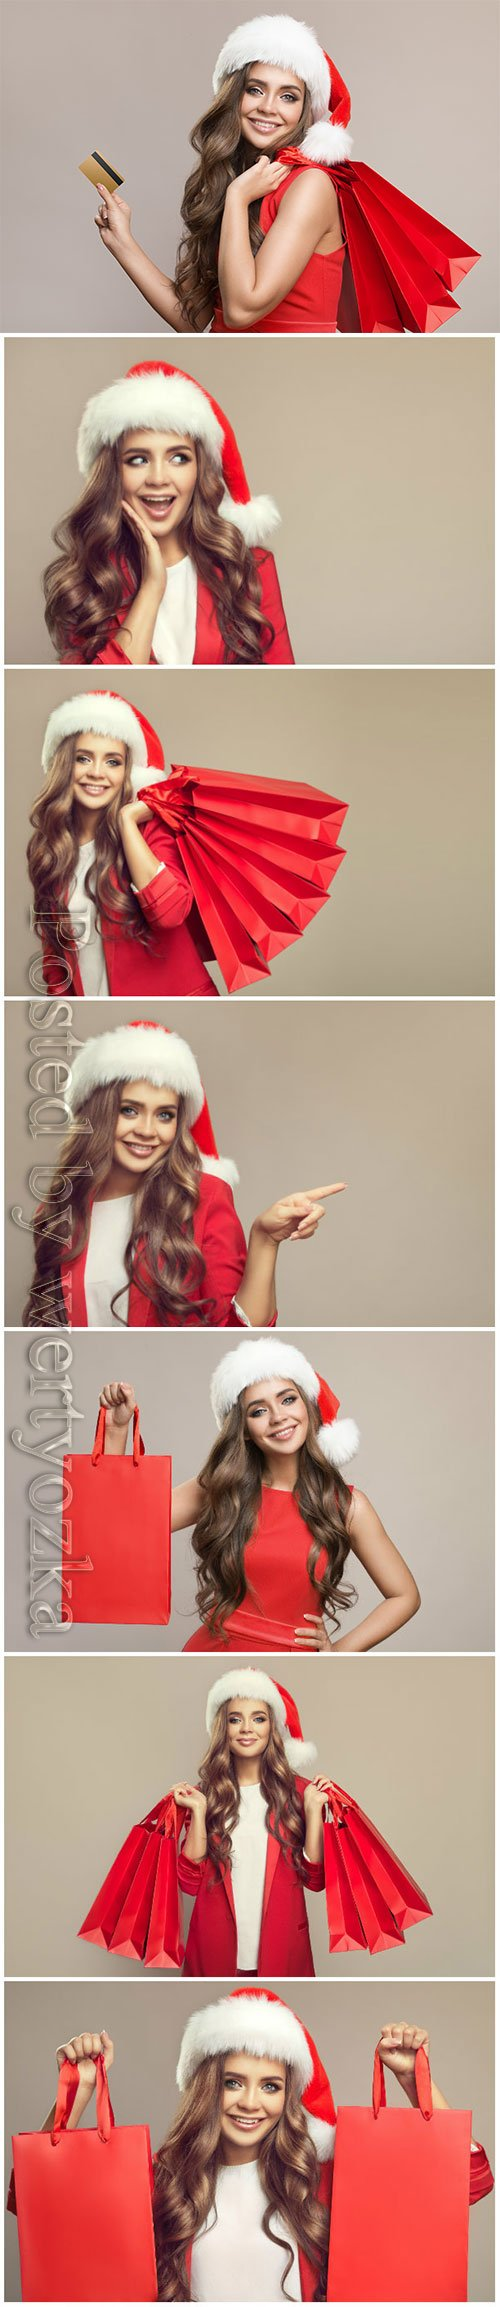 Woman, santa hat, holding, red, shopping, bags